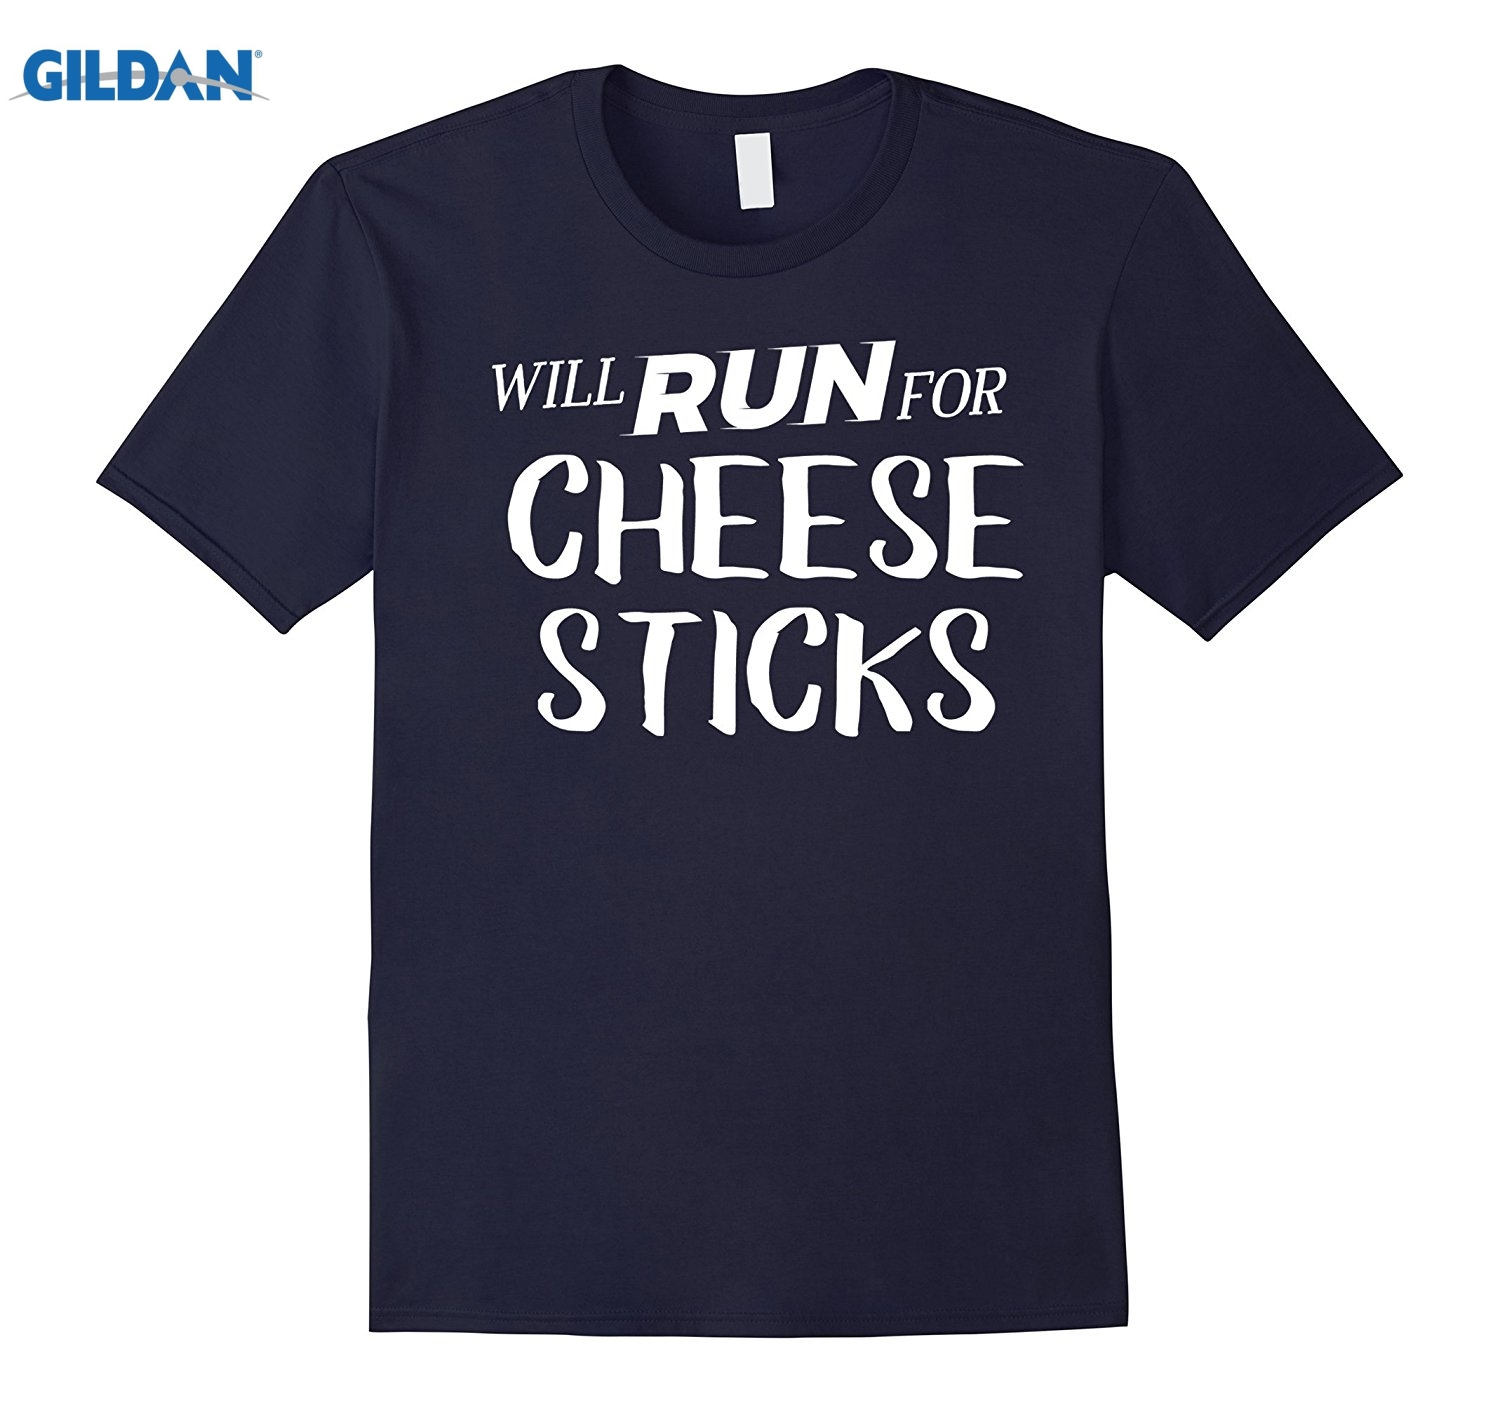 GILDAN Will for Cheese Sticks - Funny Foodie T-Shirt for Runner Mothers Day Ms. T-shirt  ...